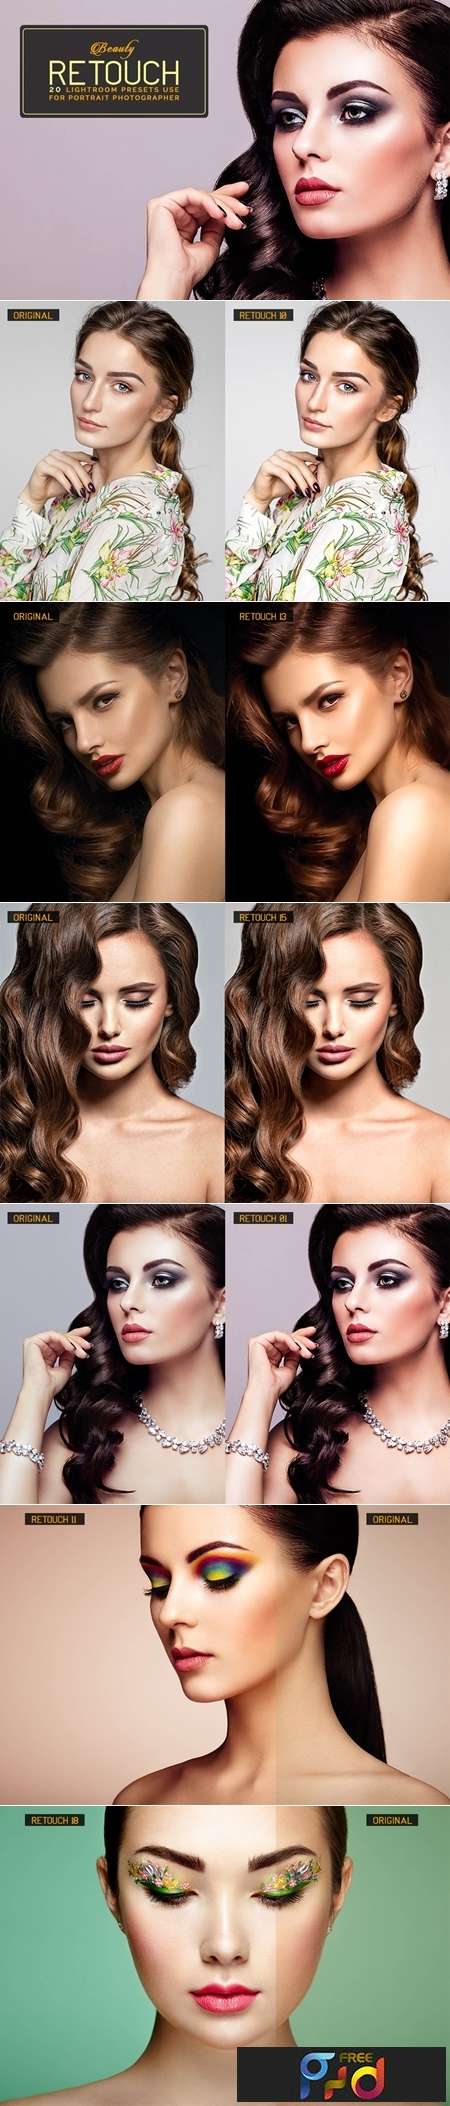 20 Beauty Retouch Lightroom Presets 3548754 1